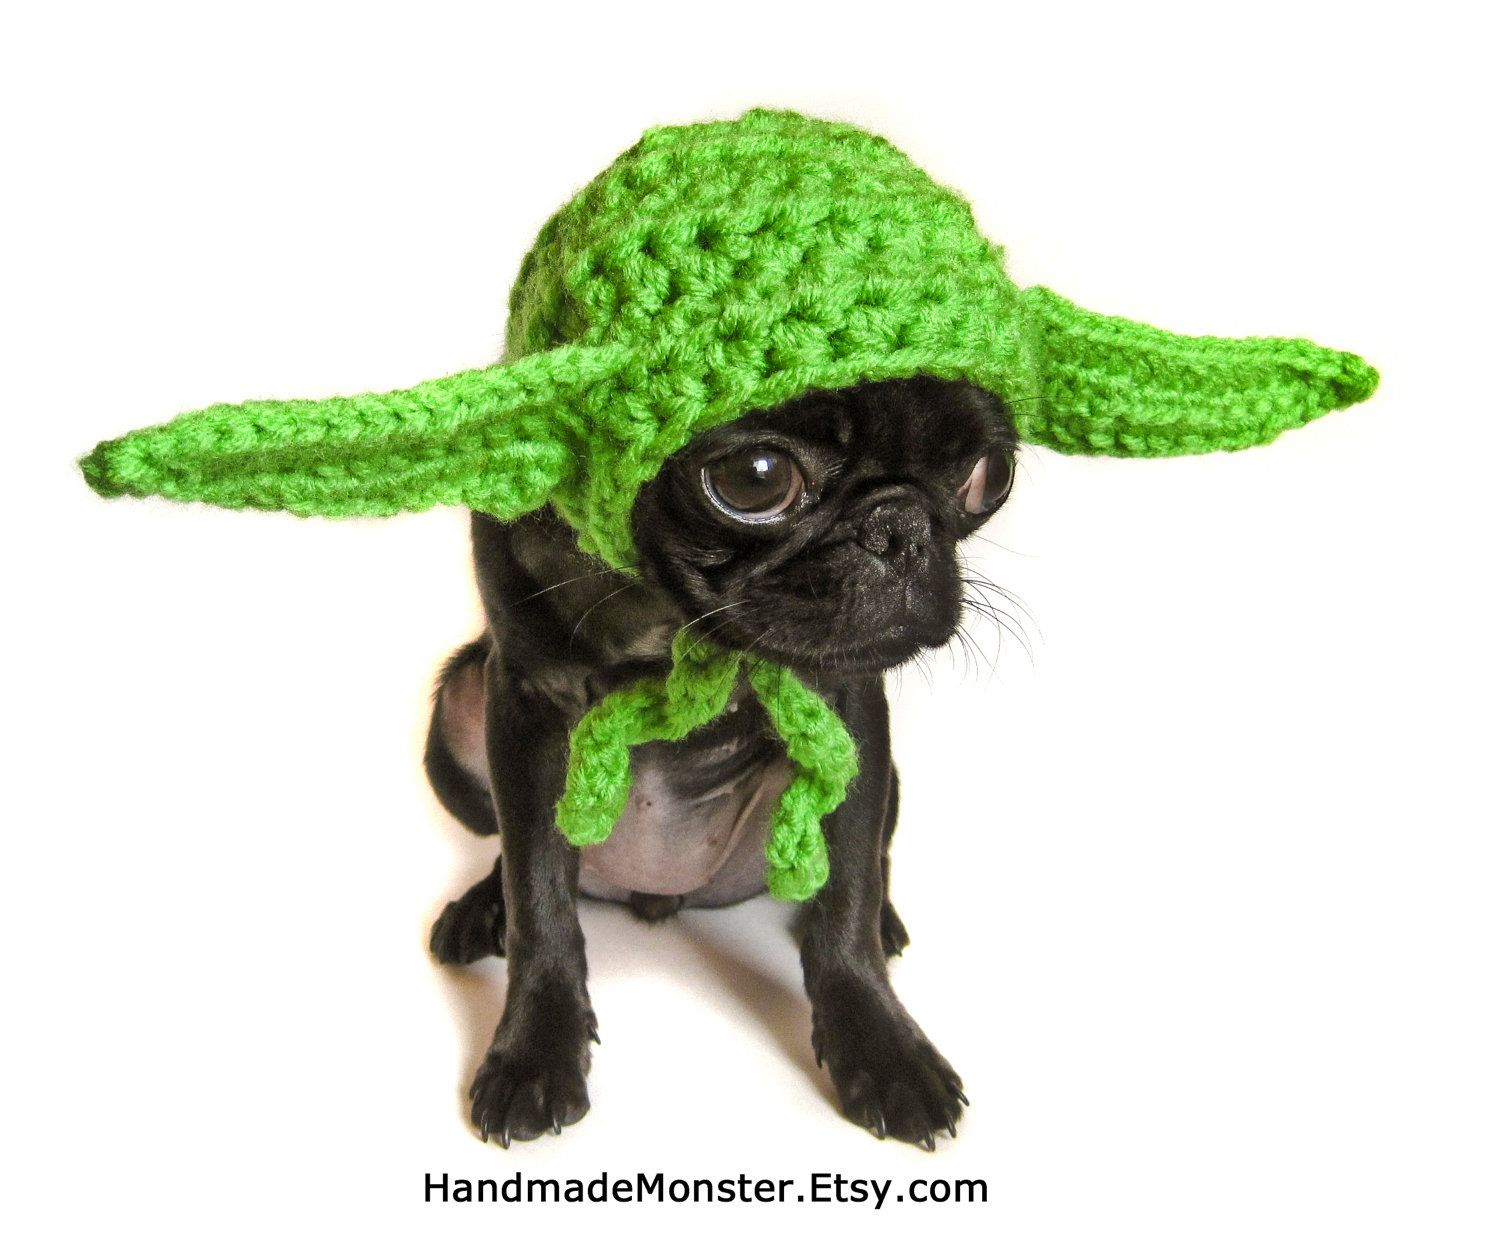 extra small STAR WARS DOG hat costume yoda inspired pet geekery nerdy costumes jedi photo photography prop mashable  sc 1 st  Pinterest & extra small STAR WARS DOG hat costume yoda inspired pet geekery ...